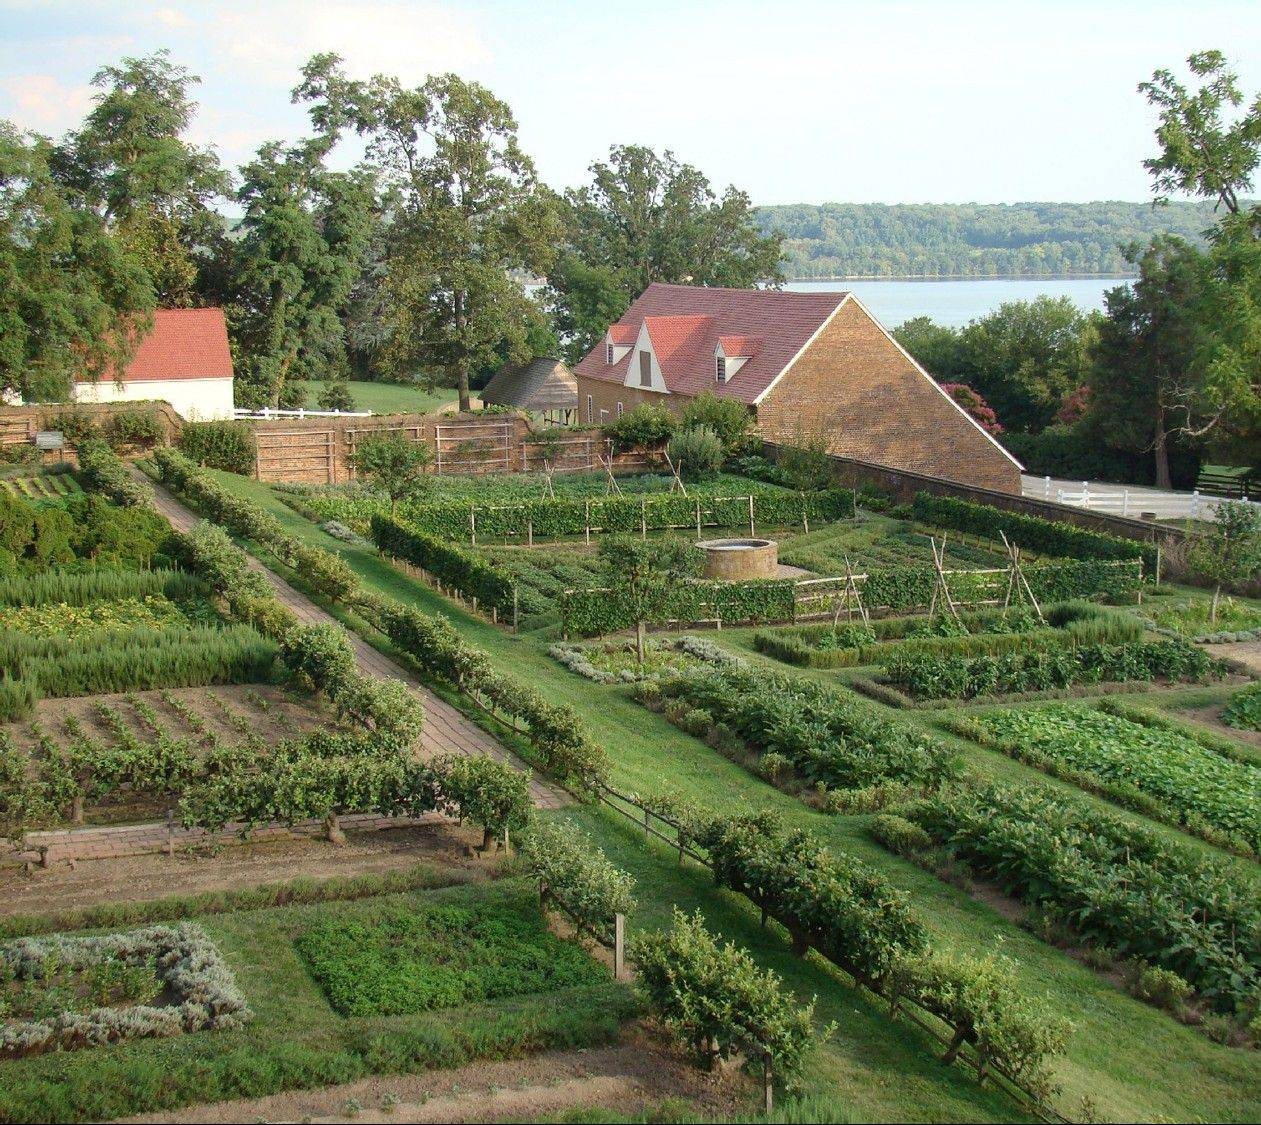 Vegetables were of special importance to George Washington; pictured is the kitchen garden at his Mount Vernon estate.